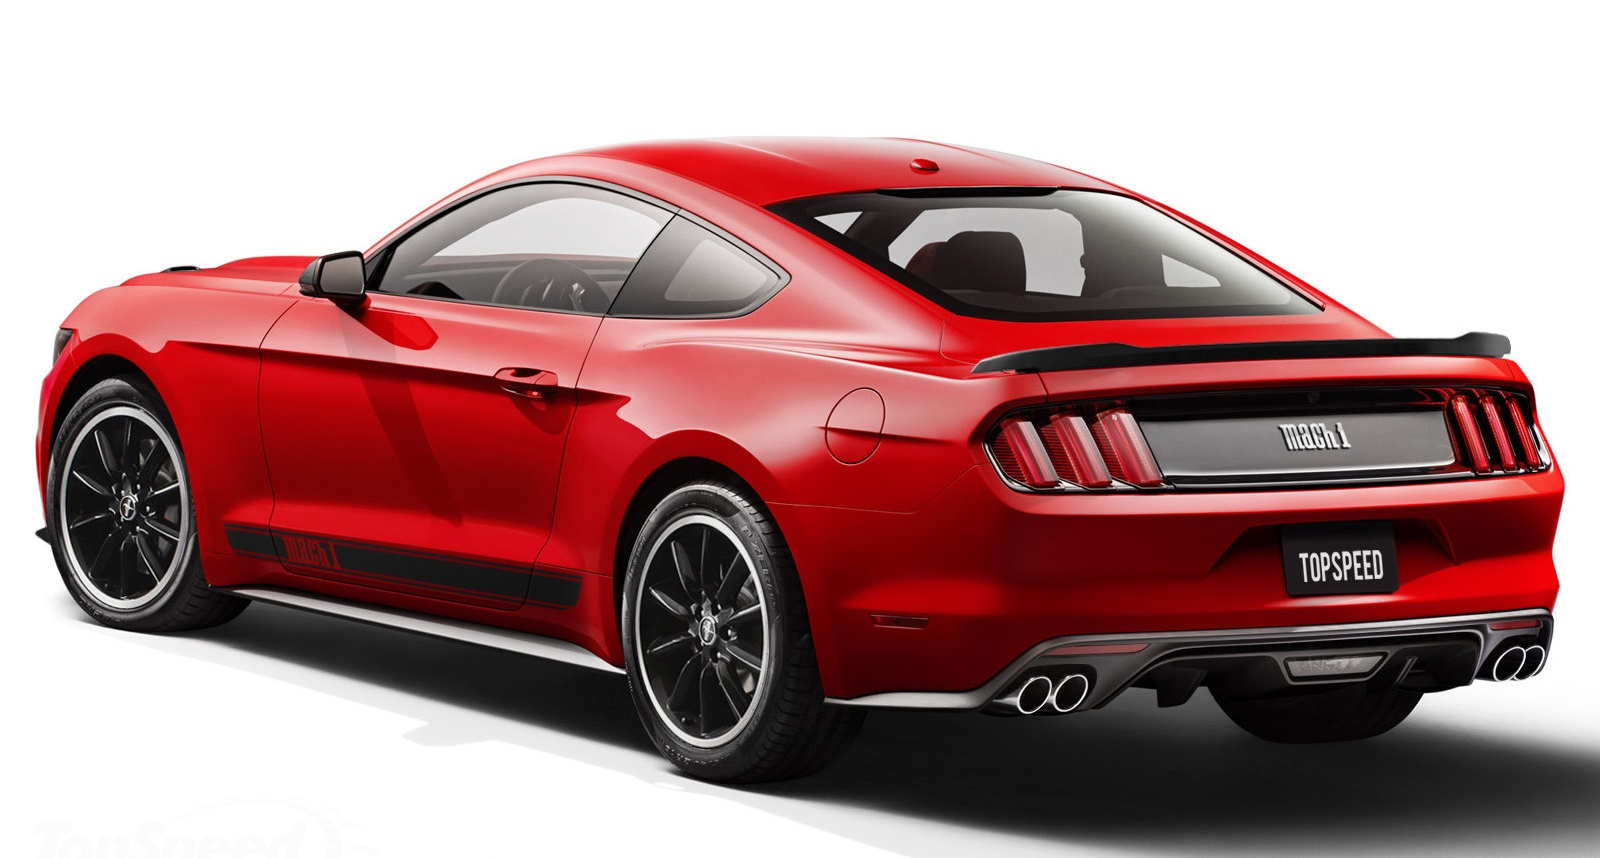 Mustang Mach 1 with 10-Speed for 2018